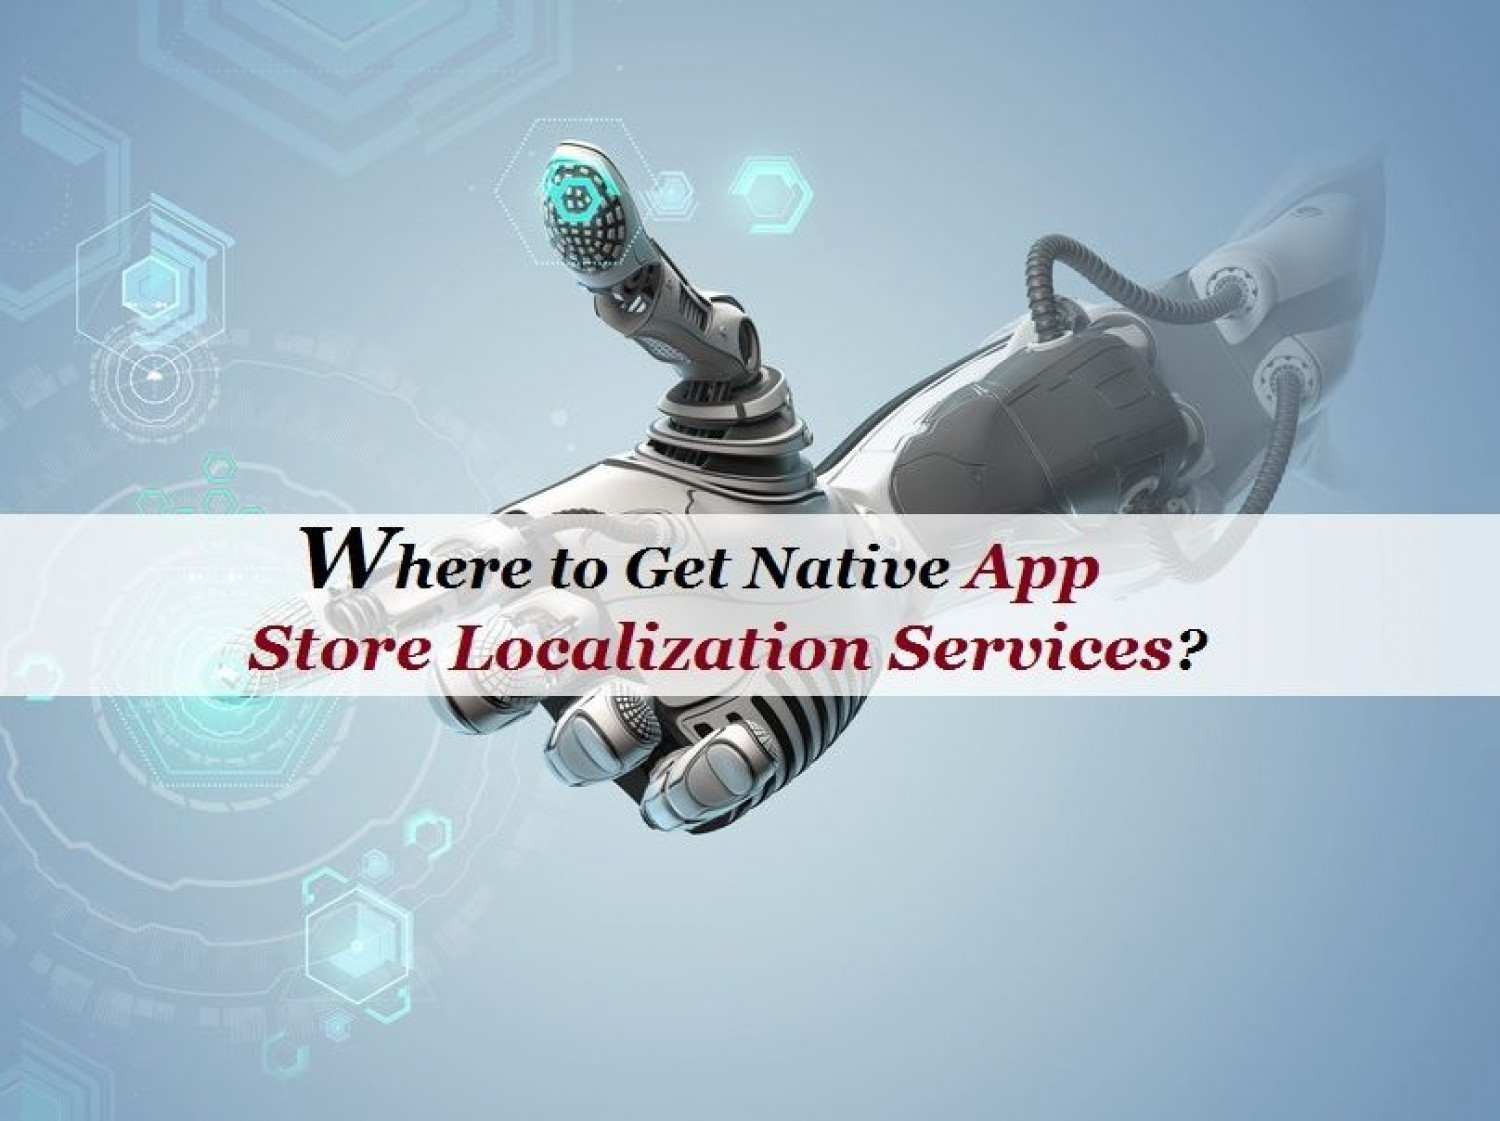 Where To Get Native App Store Localization Services? Infographic